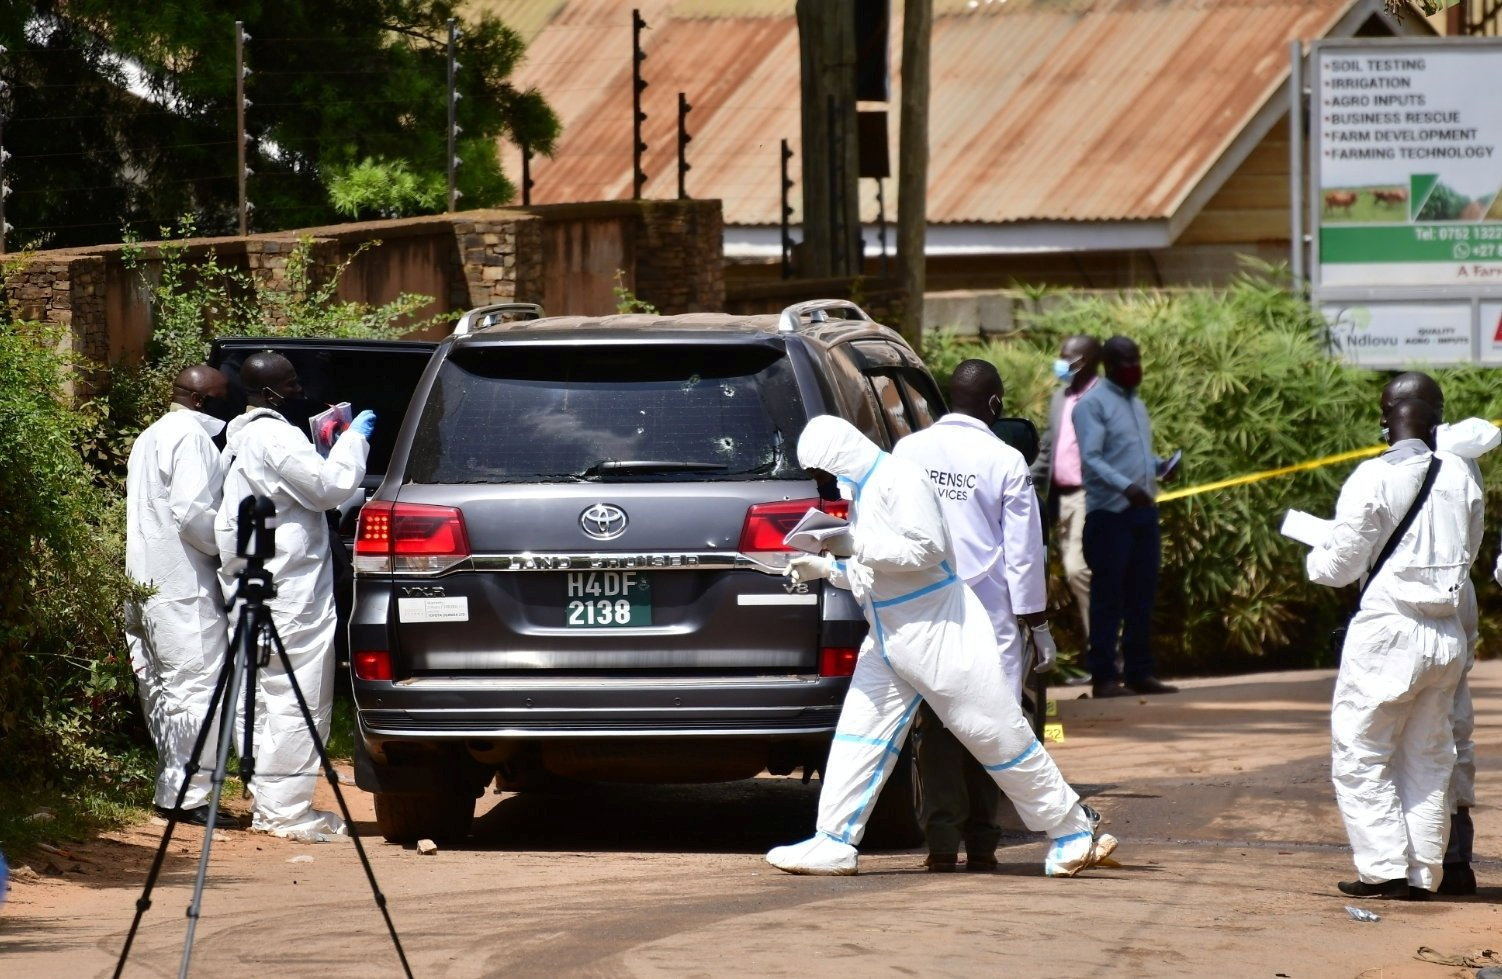 Forensic experts secure the scene of an attempted assassination on Ugandan minister of works and transport General Katumba Wamala, in which he was wounded and his daughter and driver killed, near Kampala, Uganda June 1, 2021. (Reuters Photo)